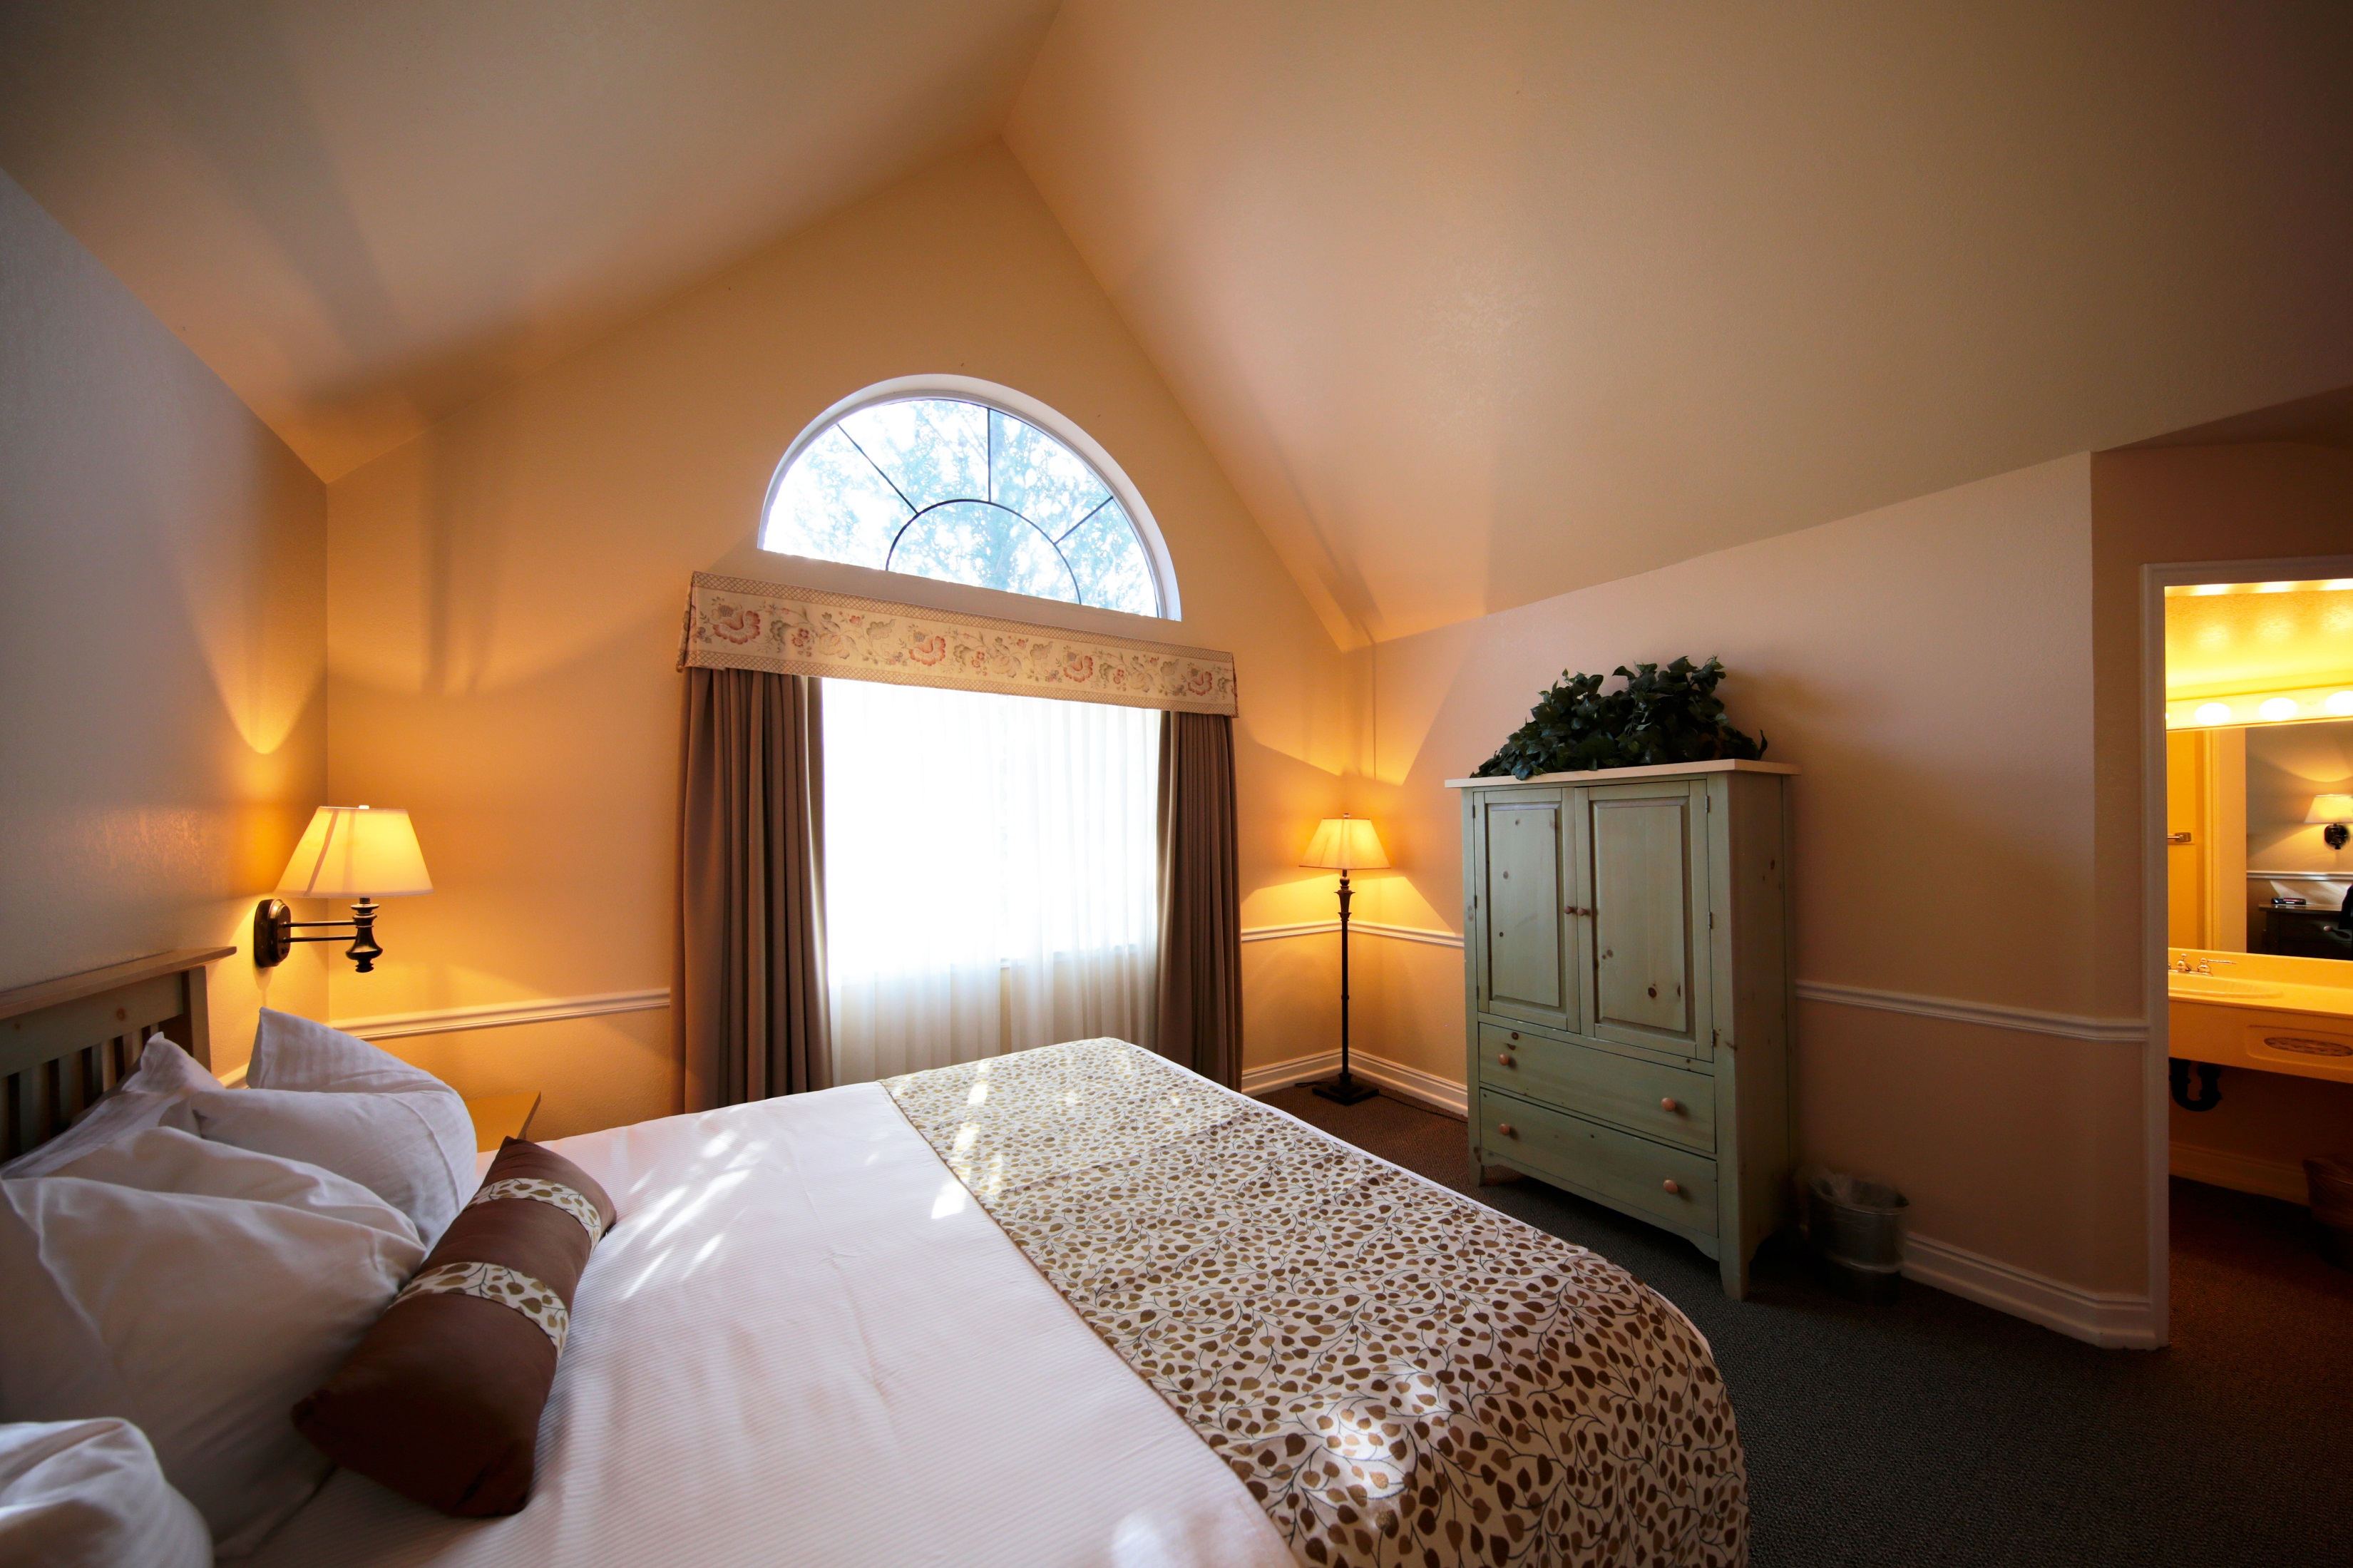 Picture of Homestead's Cottage King Guestroom. The room contains a king size bed, a stylish dresser and private restroom. A large window allows for natural light to illuminate the room.